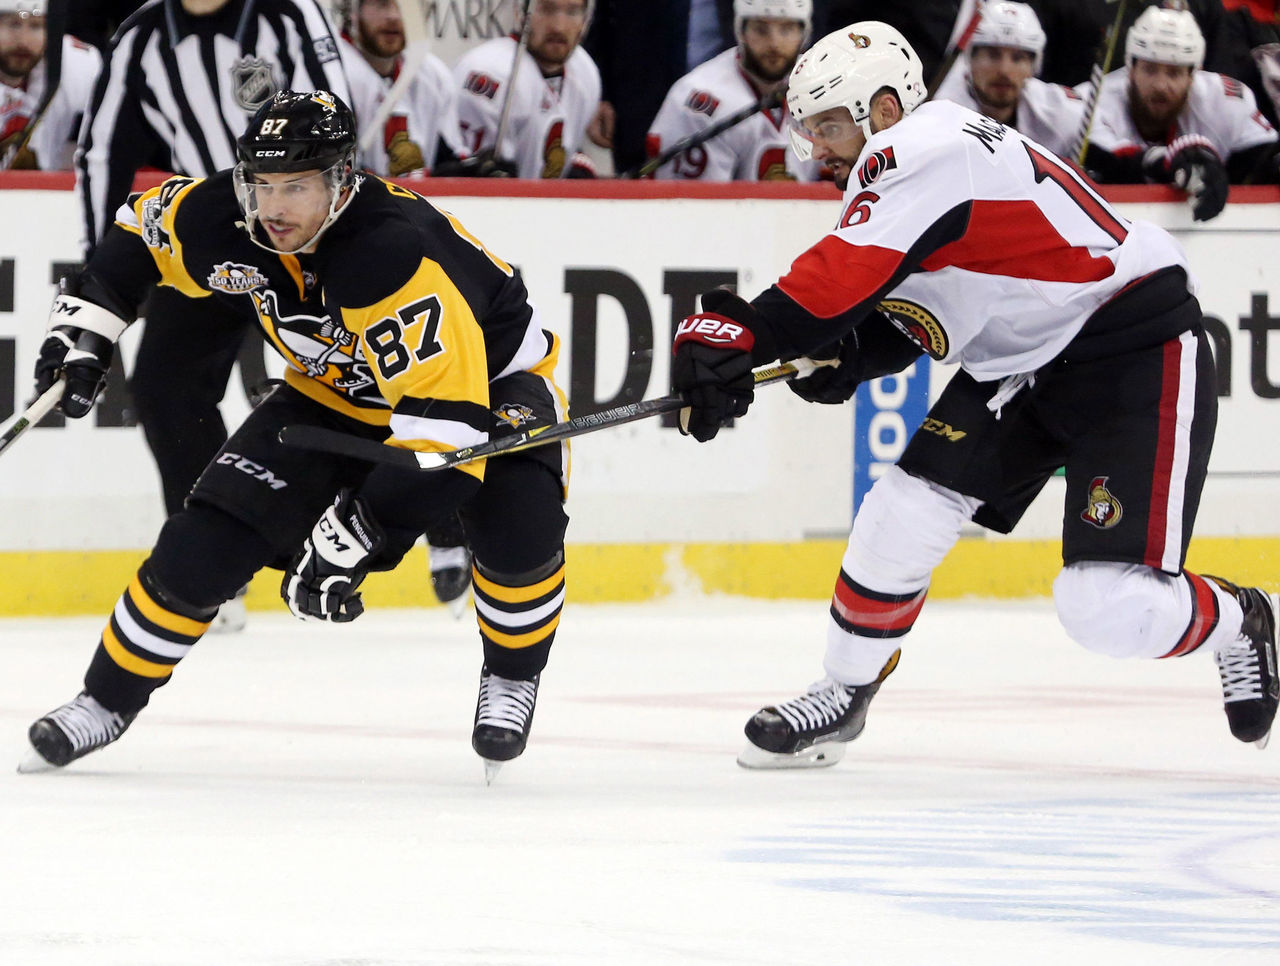 Cropped 2017 05 14t030244z 1432440510 nocid rtrmadp 3 nhl stanley cup playoffs ottawa senators at pittsburgh penguins